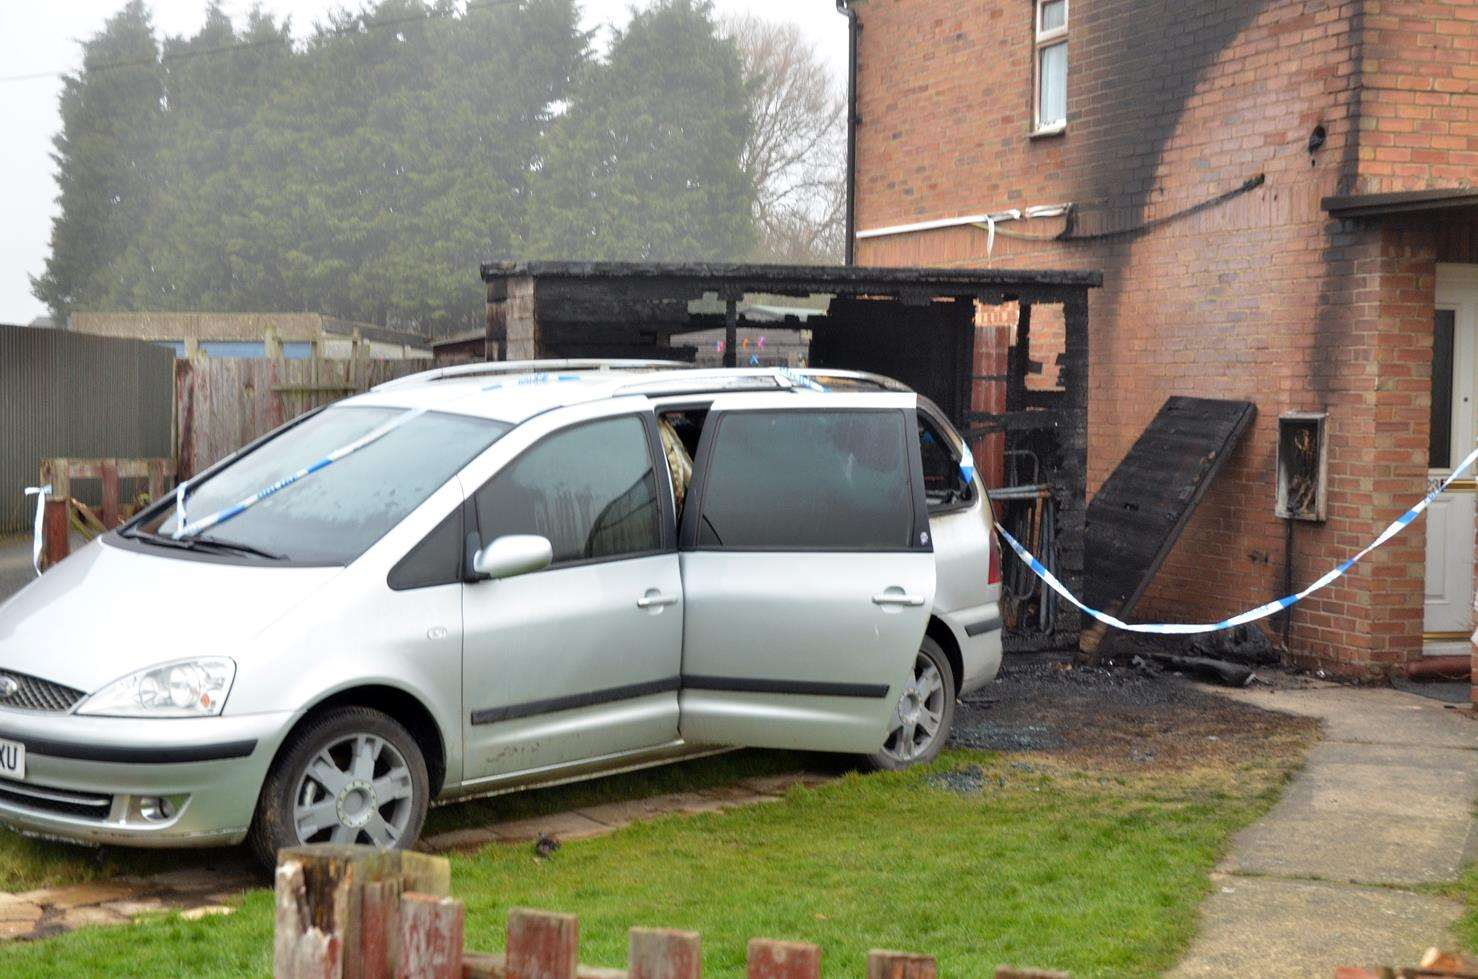 VILLAGE ARSONS: The vehicle, shed and house damaged by a fire in Old Fendyke Road, Weston Hills. Photo (TIM WILSON): SG-050219-018TW